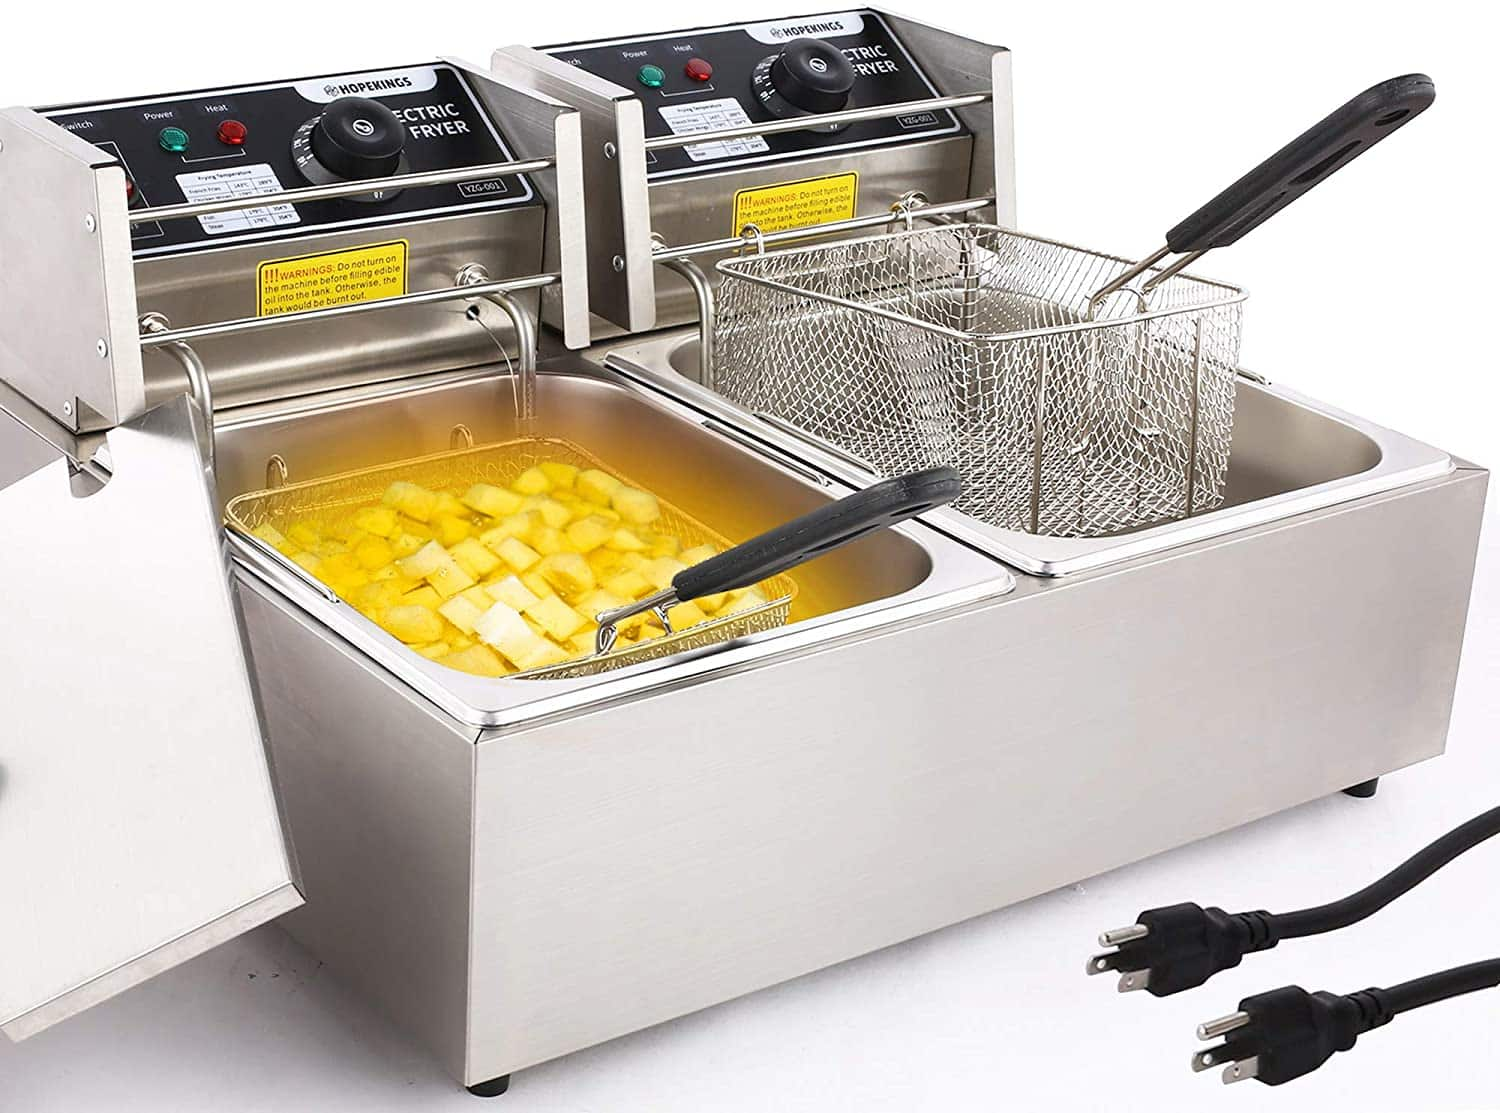 Amazon: Commercial Deep Fryer Countertop for Home, Just $135.99 (Reg $169.99) after code!